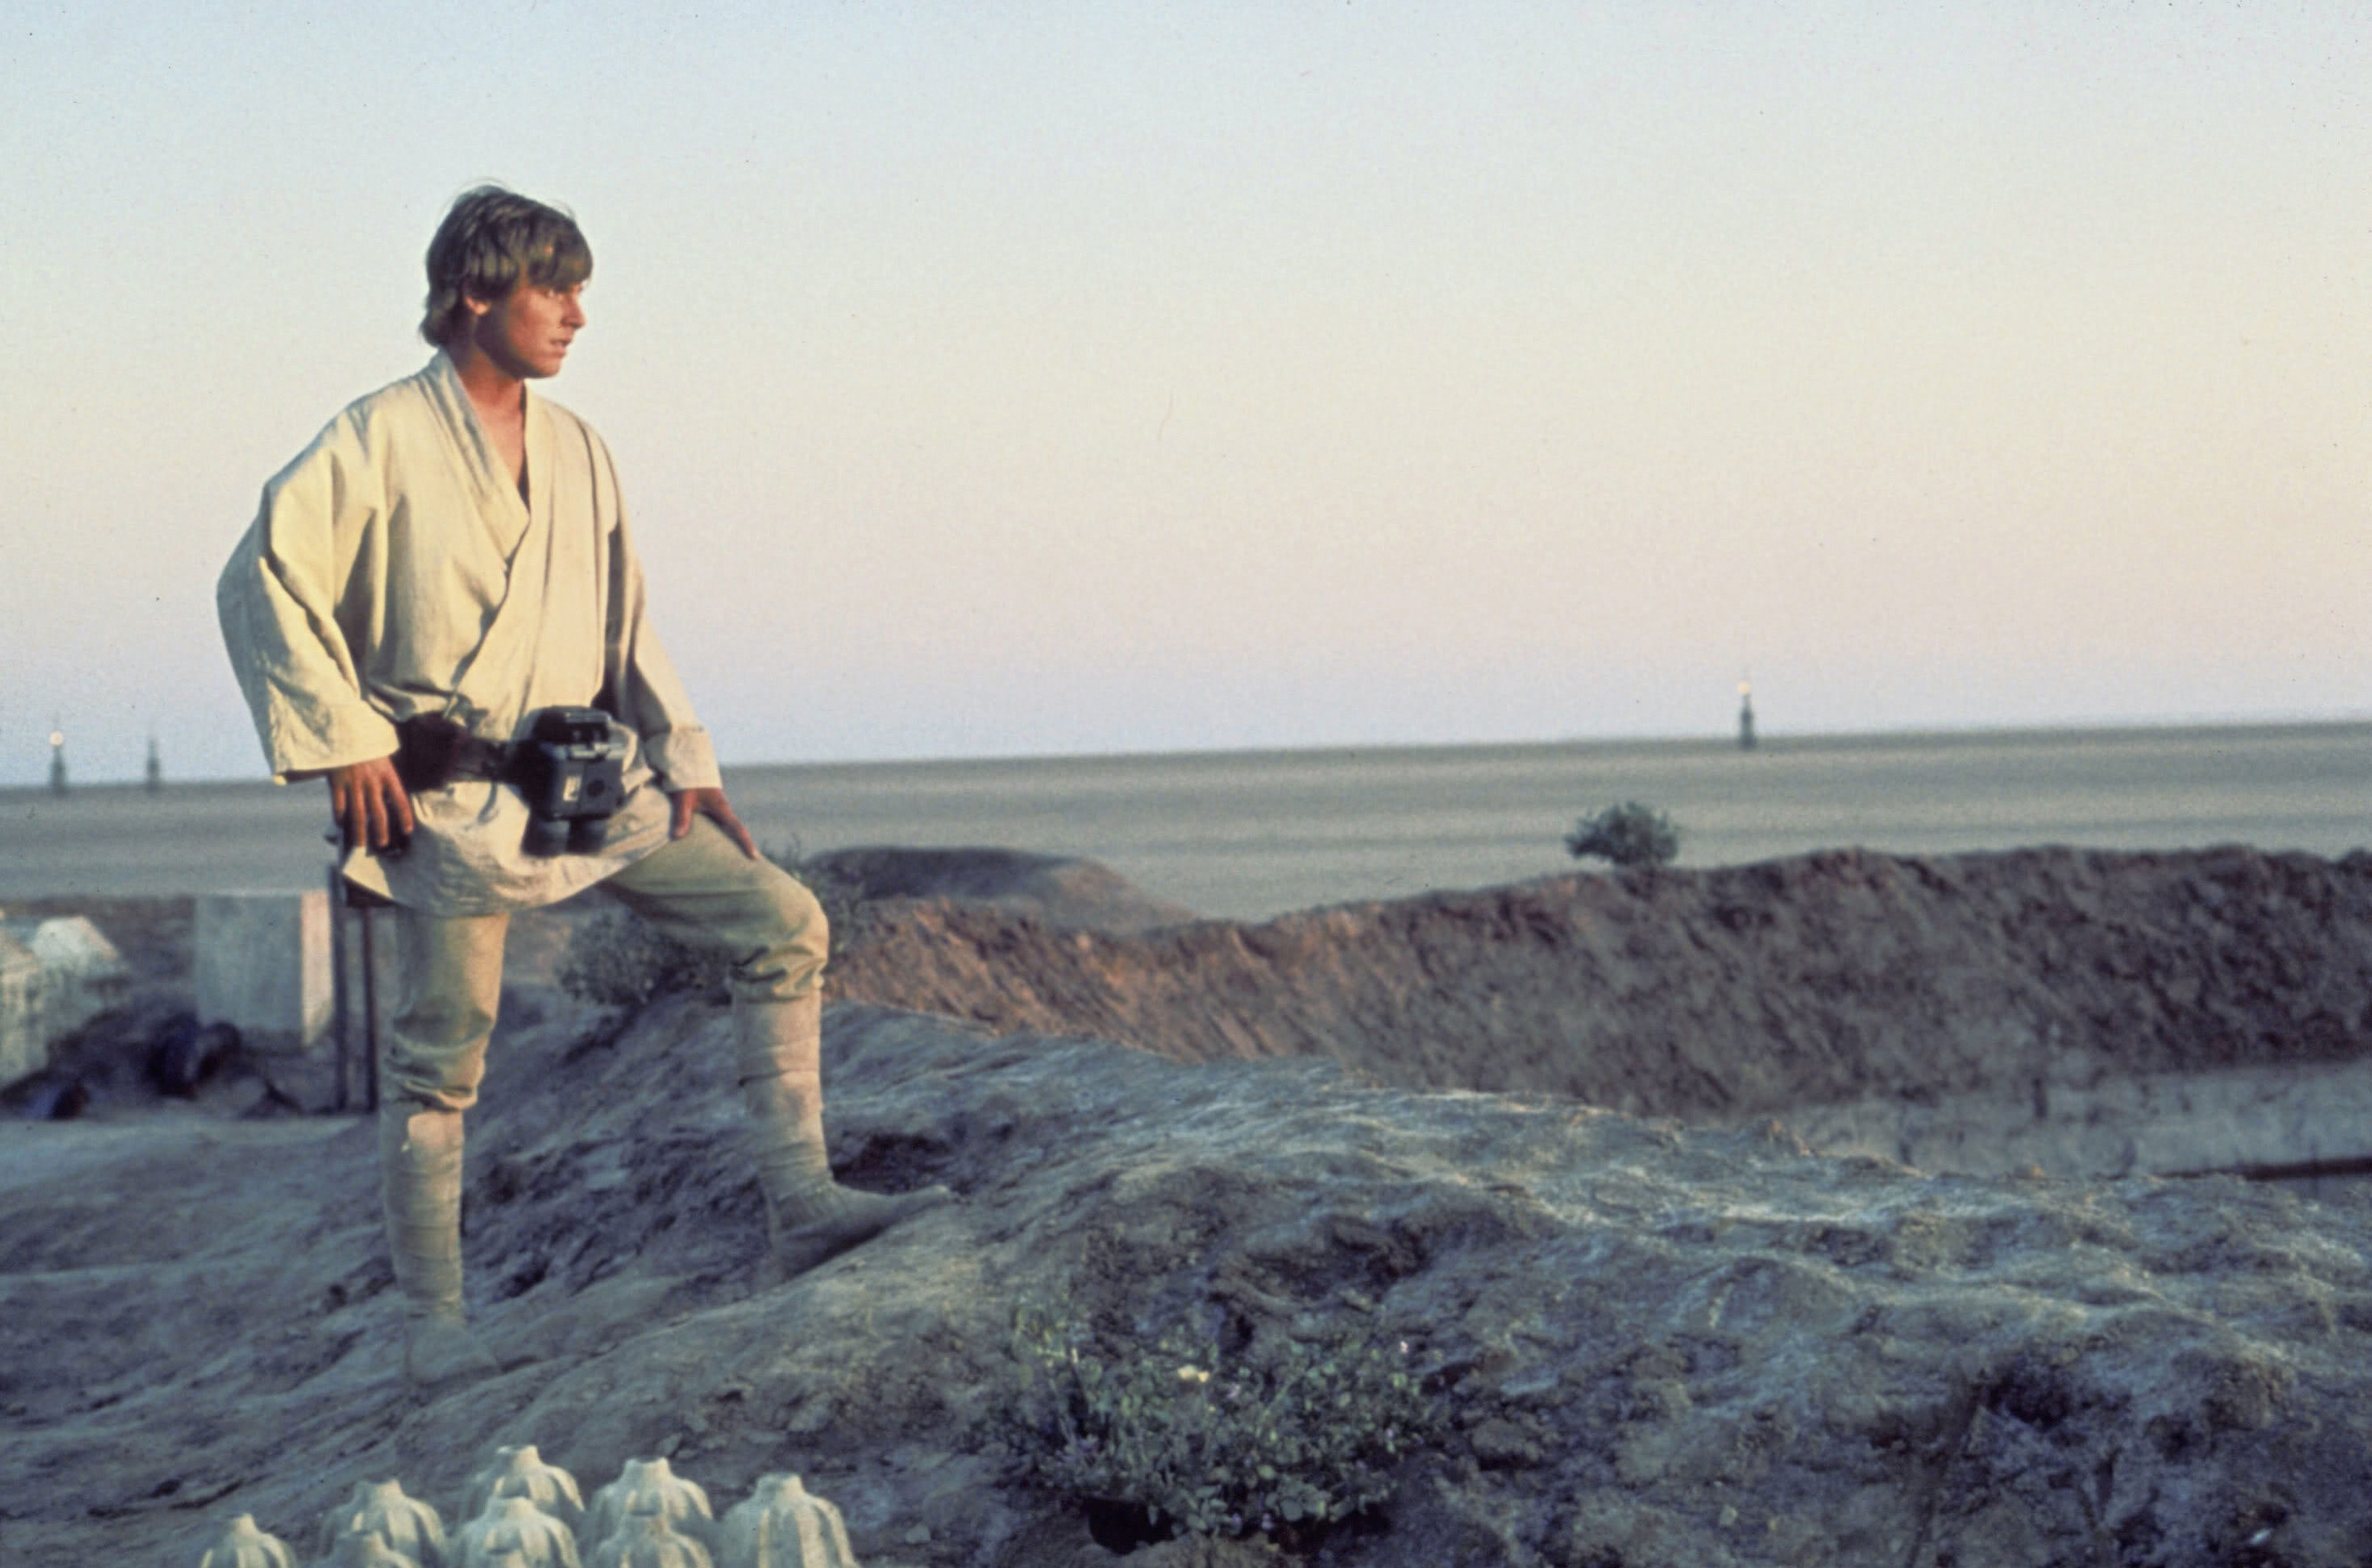 Mark Hamill as Luke Skywalker on the Tatooine set of Star Wars: Episode IV - A New Hope